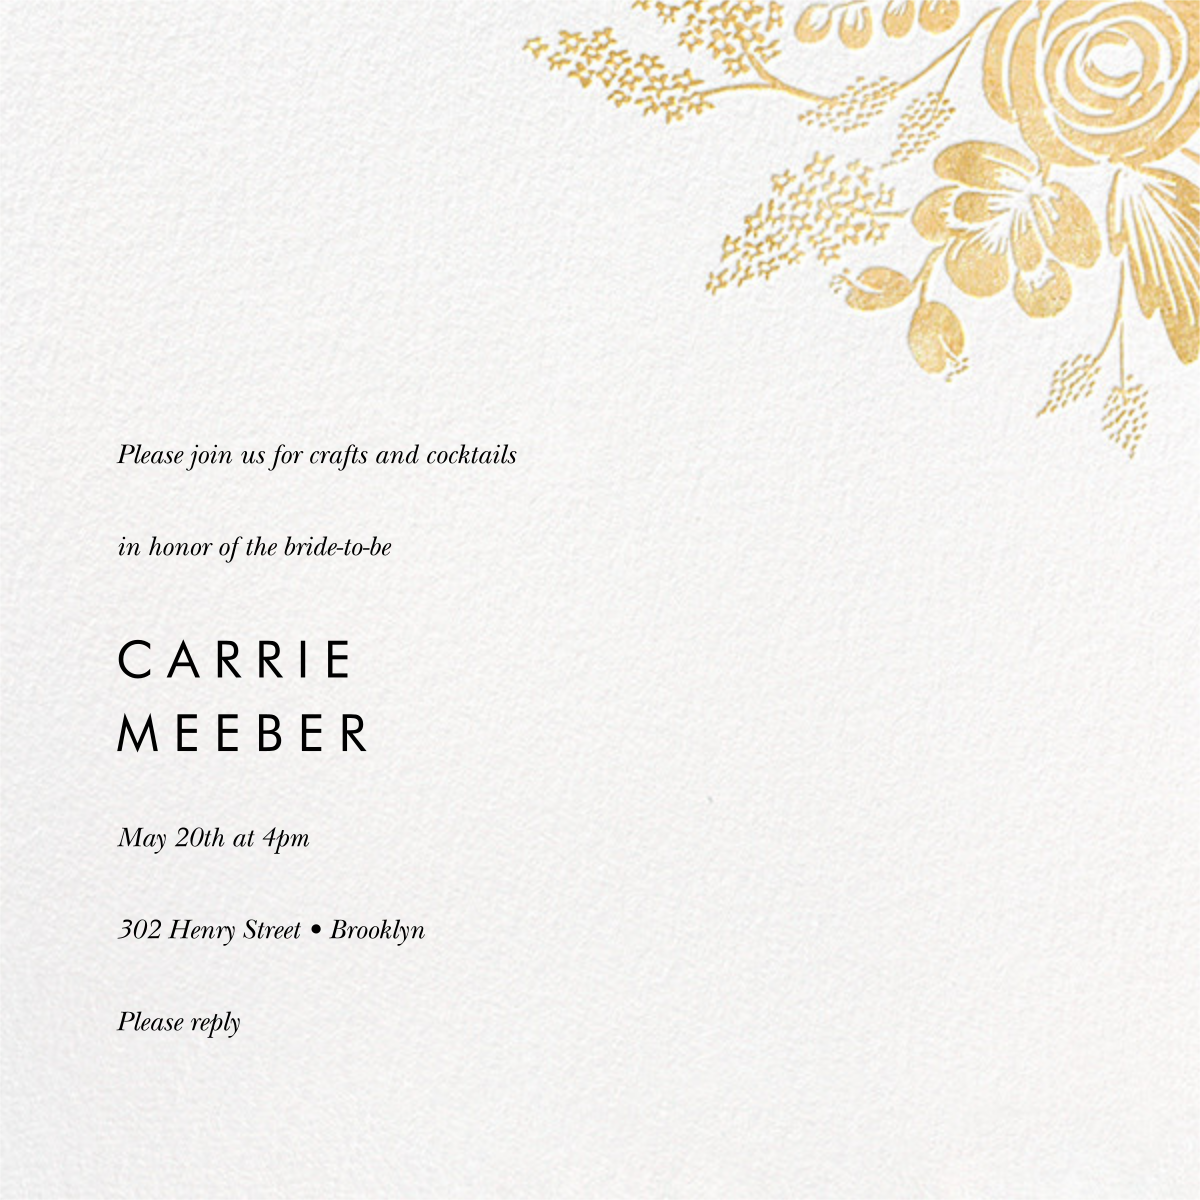 Heather and Lace (Square) - Gold - Rifle Paper Co. - Bridal shower